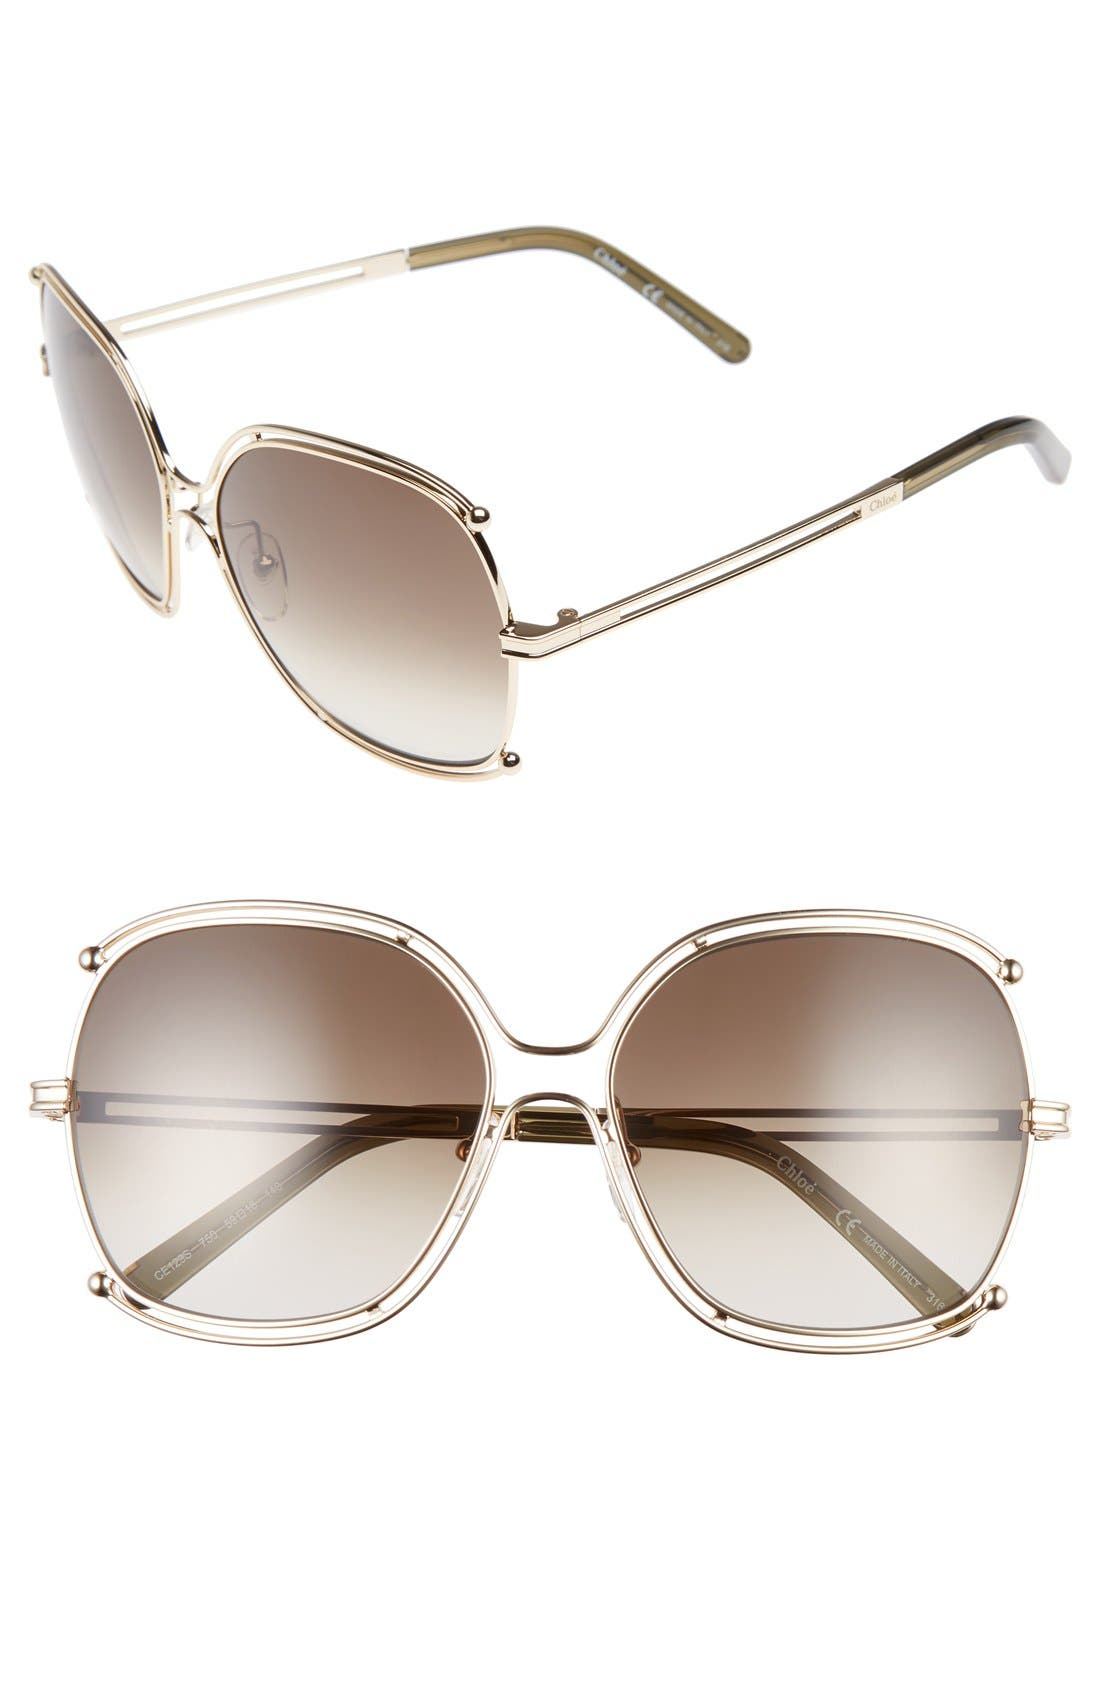 Isidora 59mm Square Sunglasses,                             Main thumbnail 2, color,